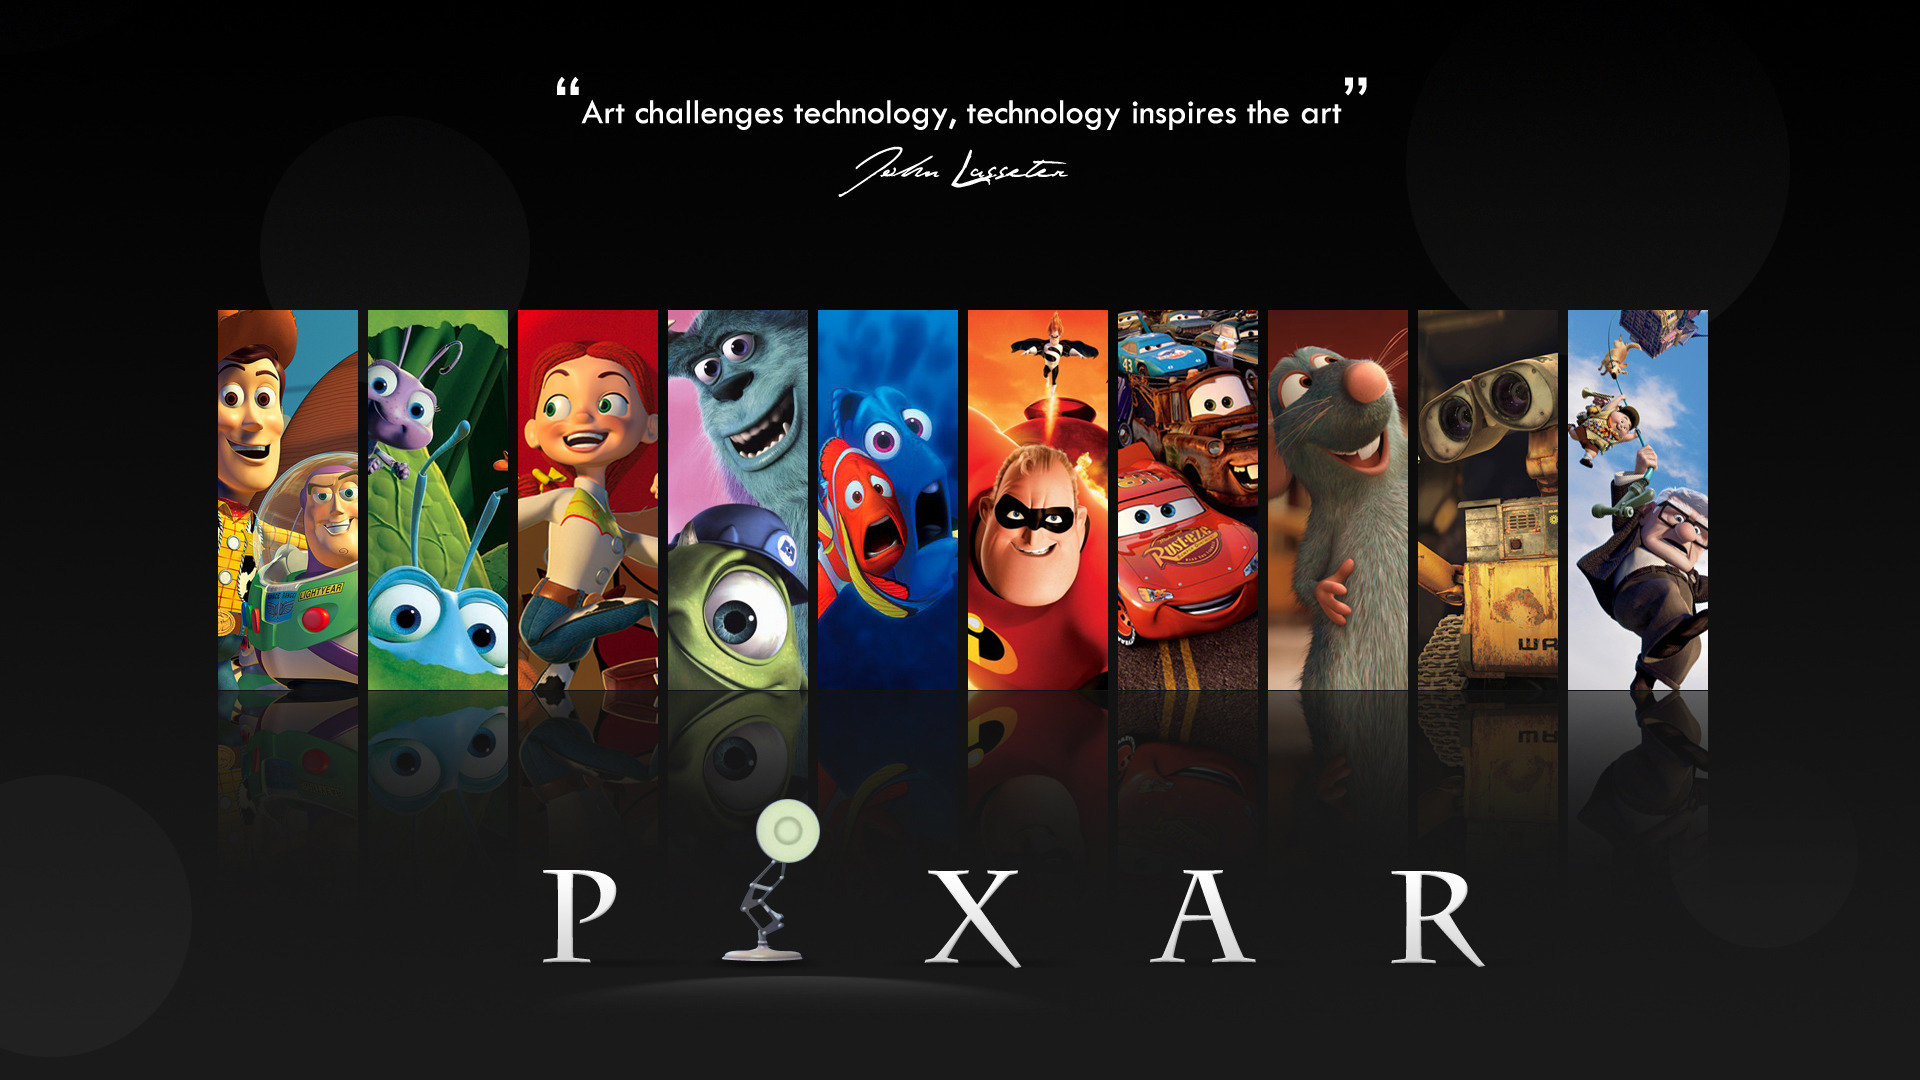 pixar Movies wall-e cars HD Wallpaper